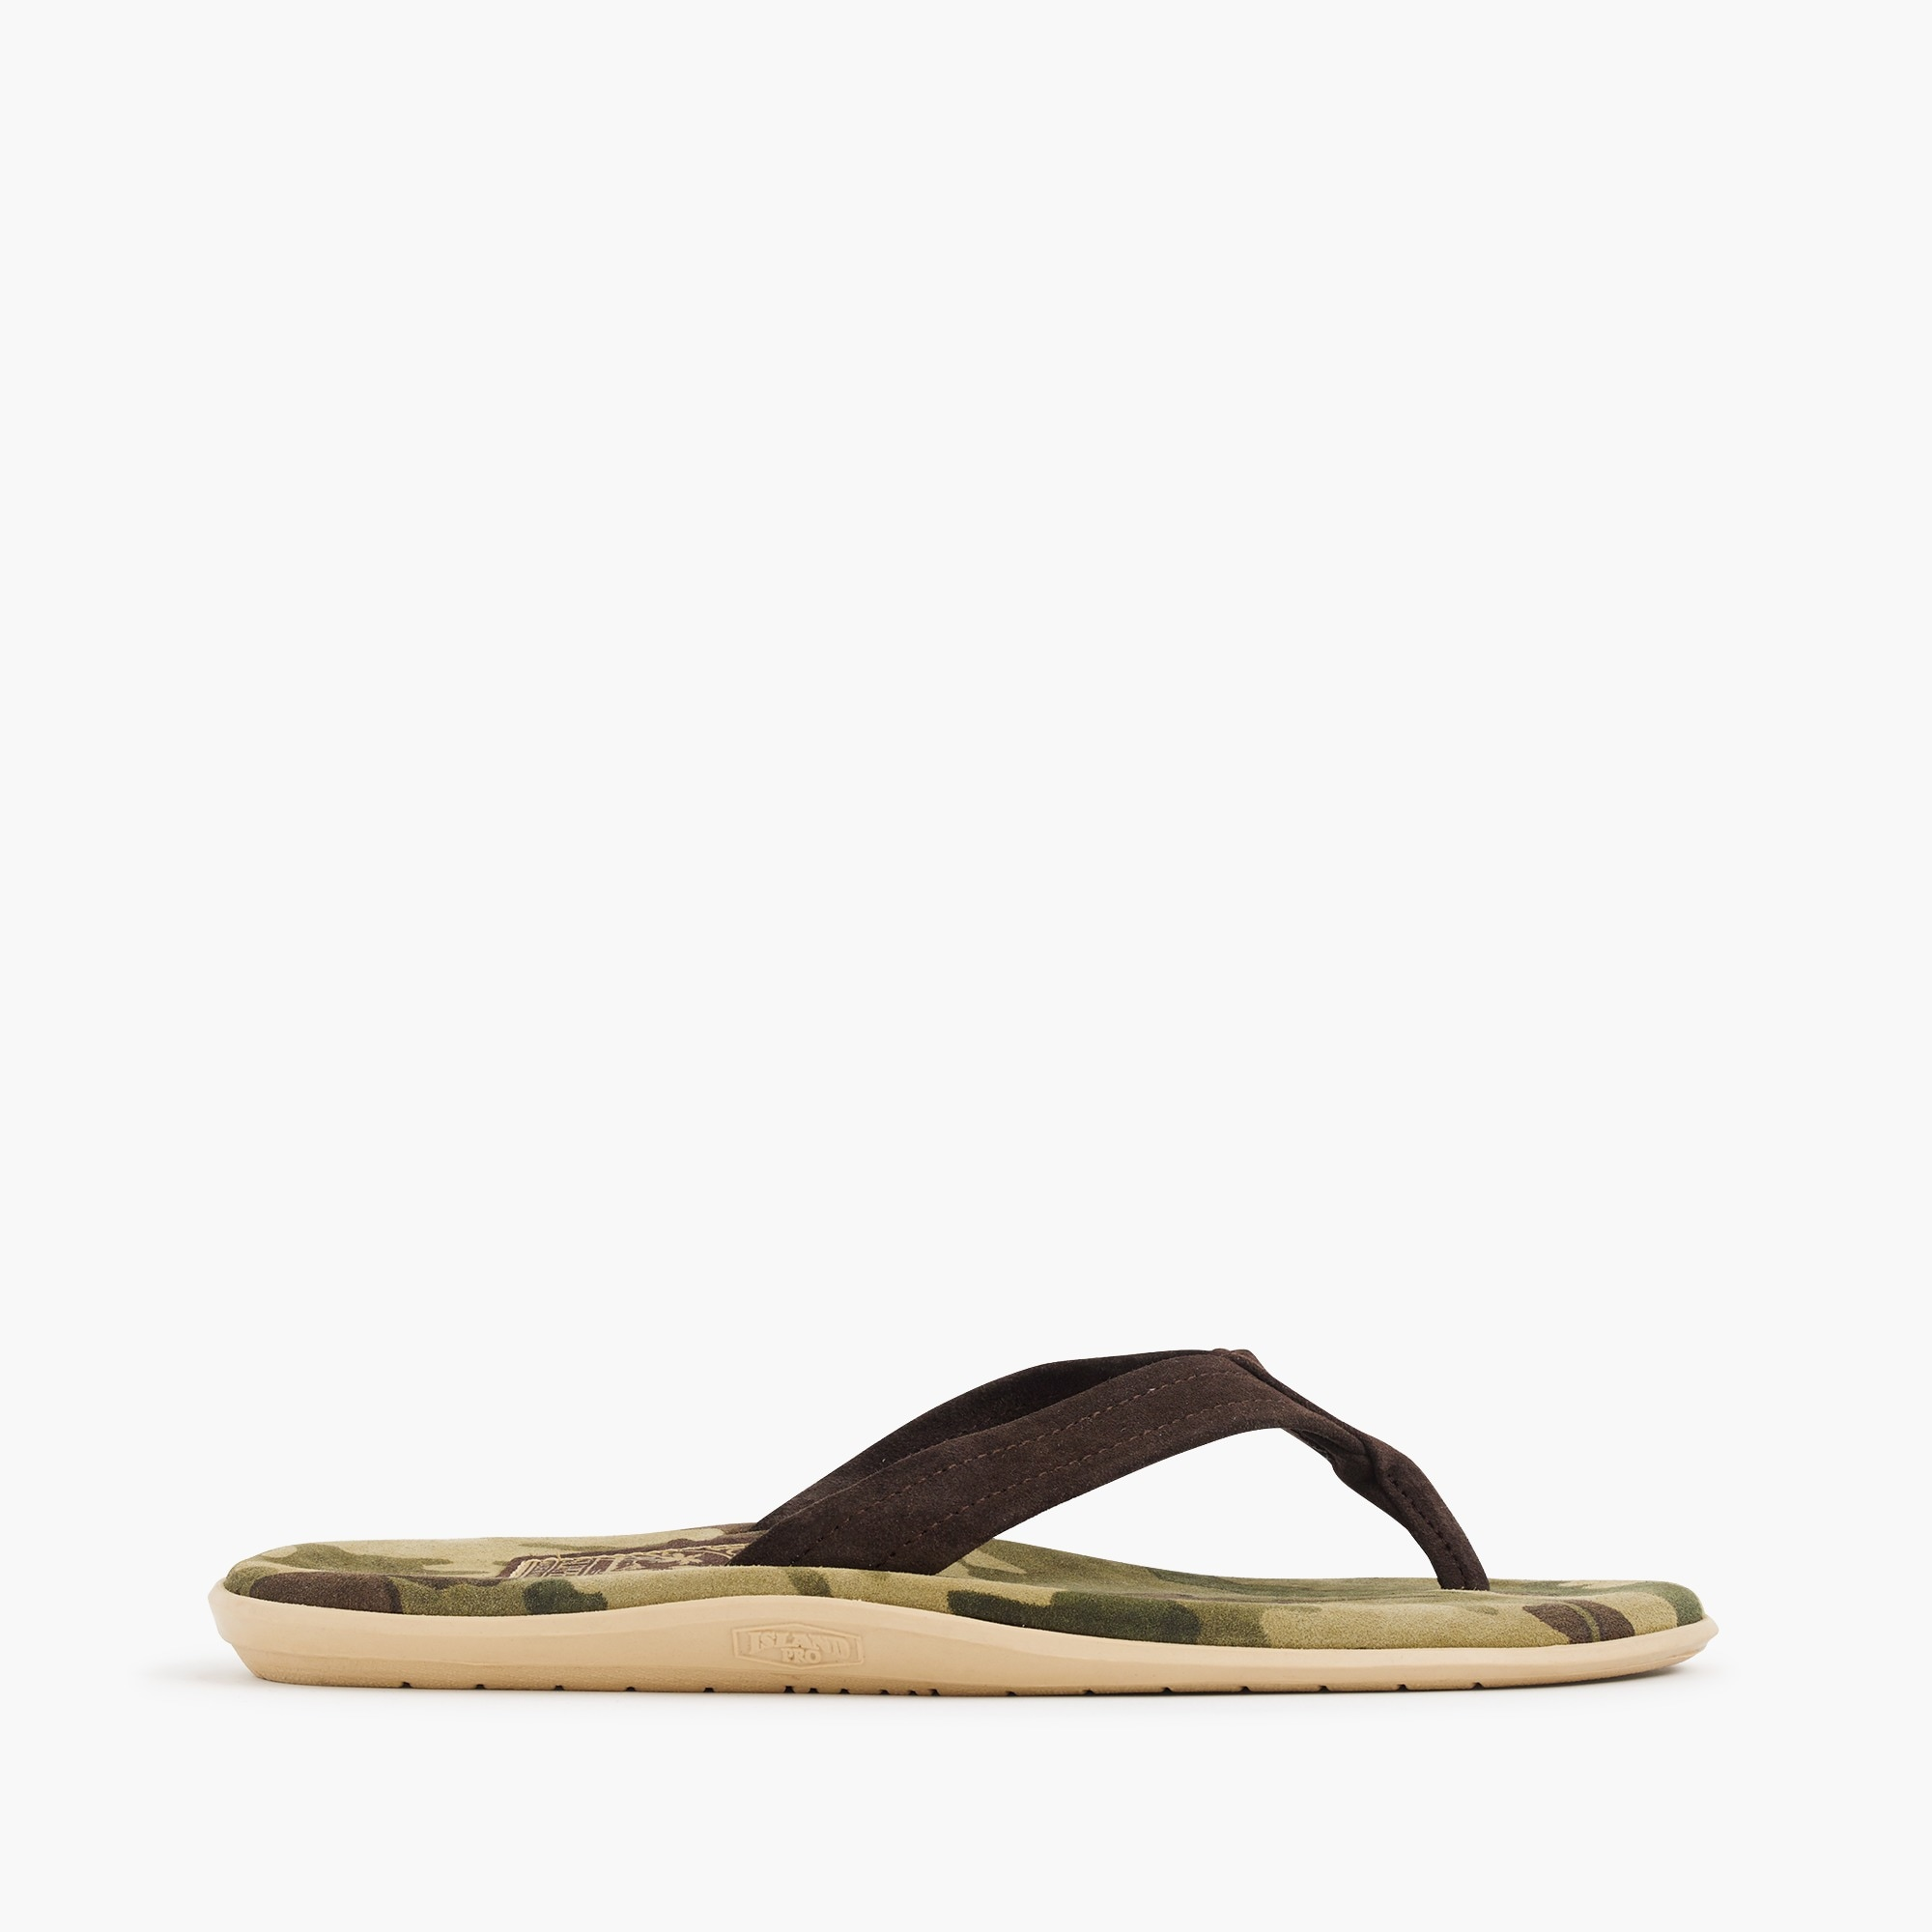 Island Slipper® flip-flops in camo men j.crew in good company c